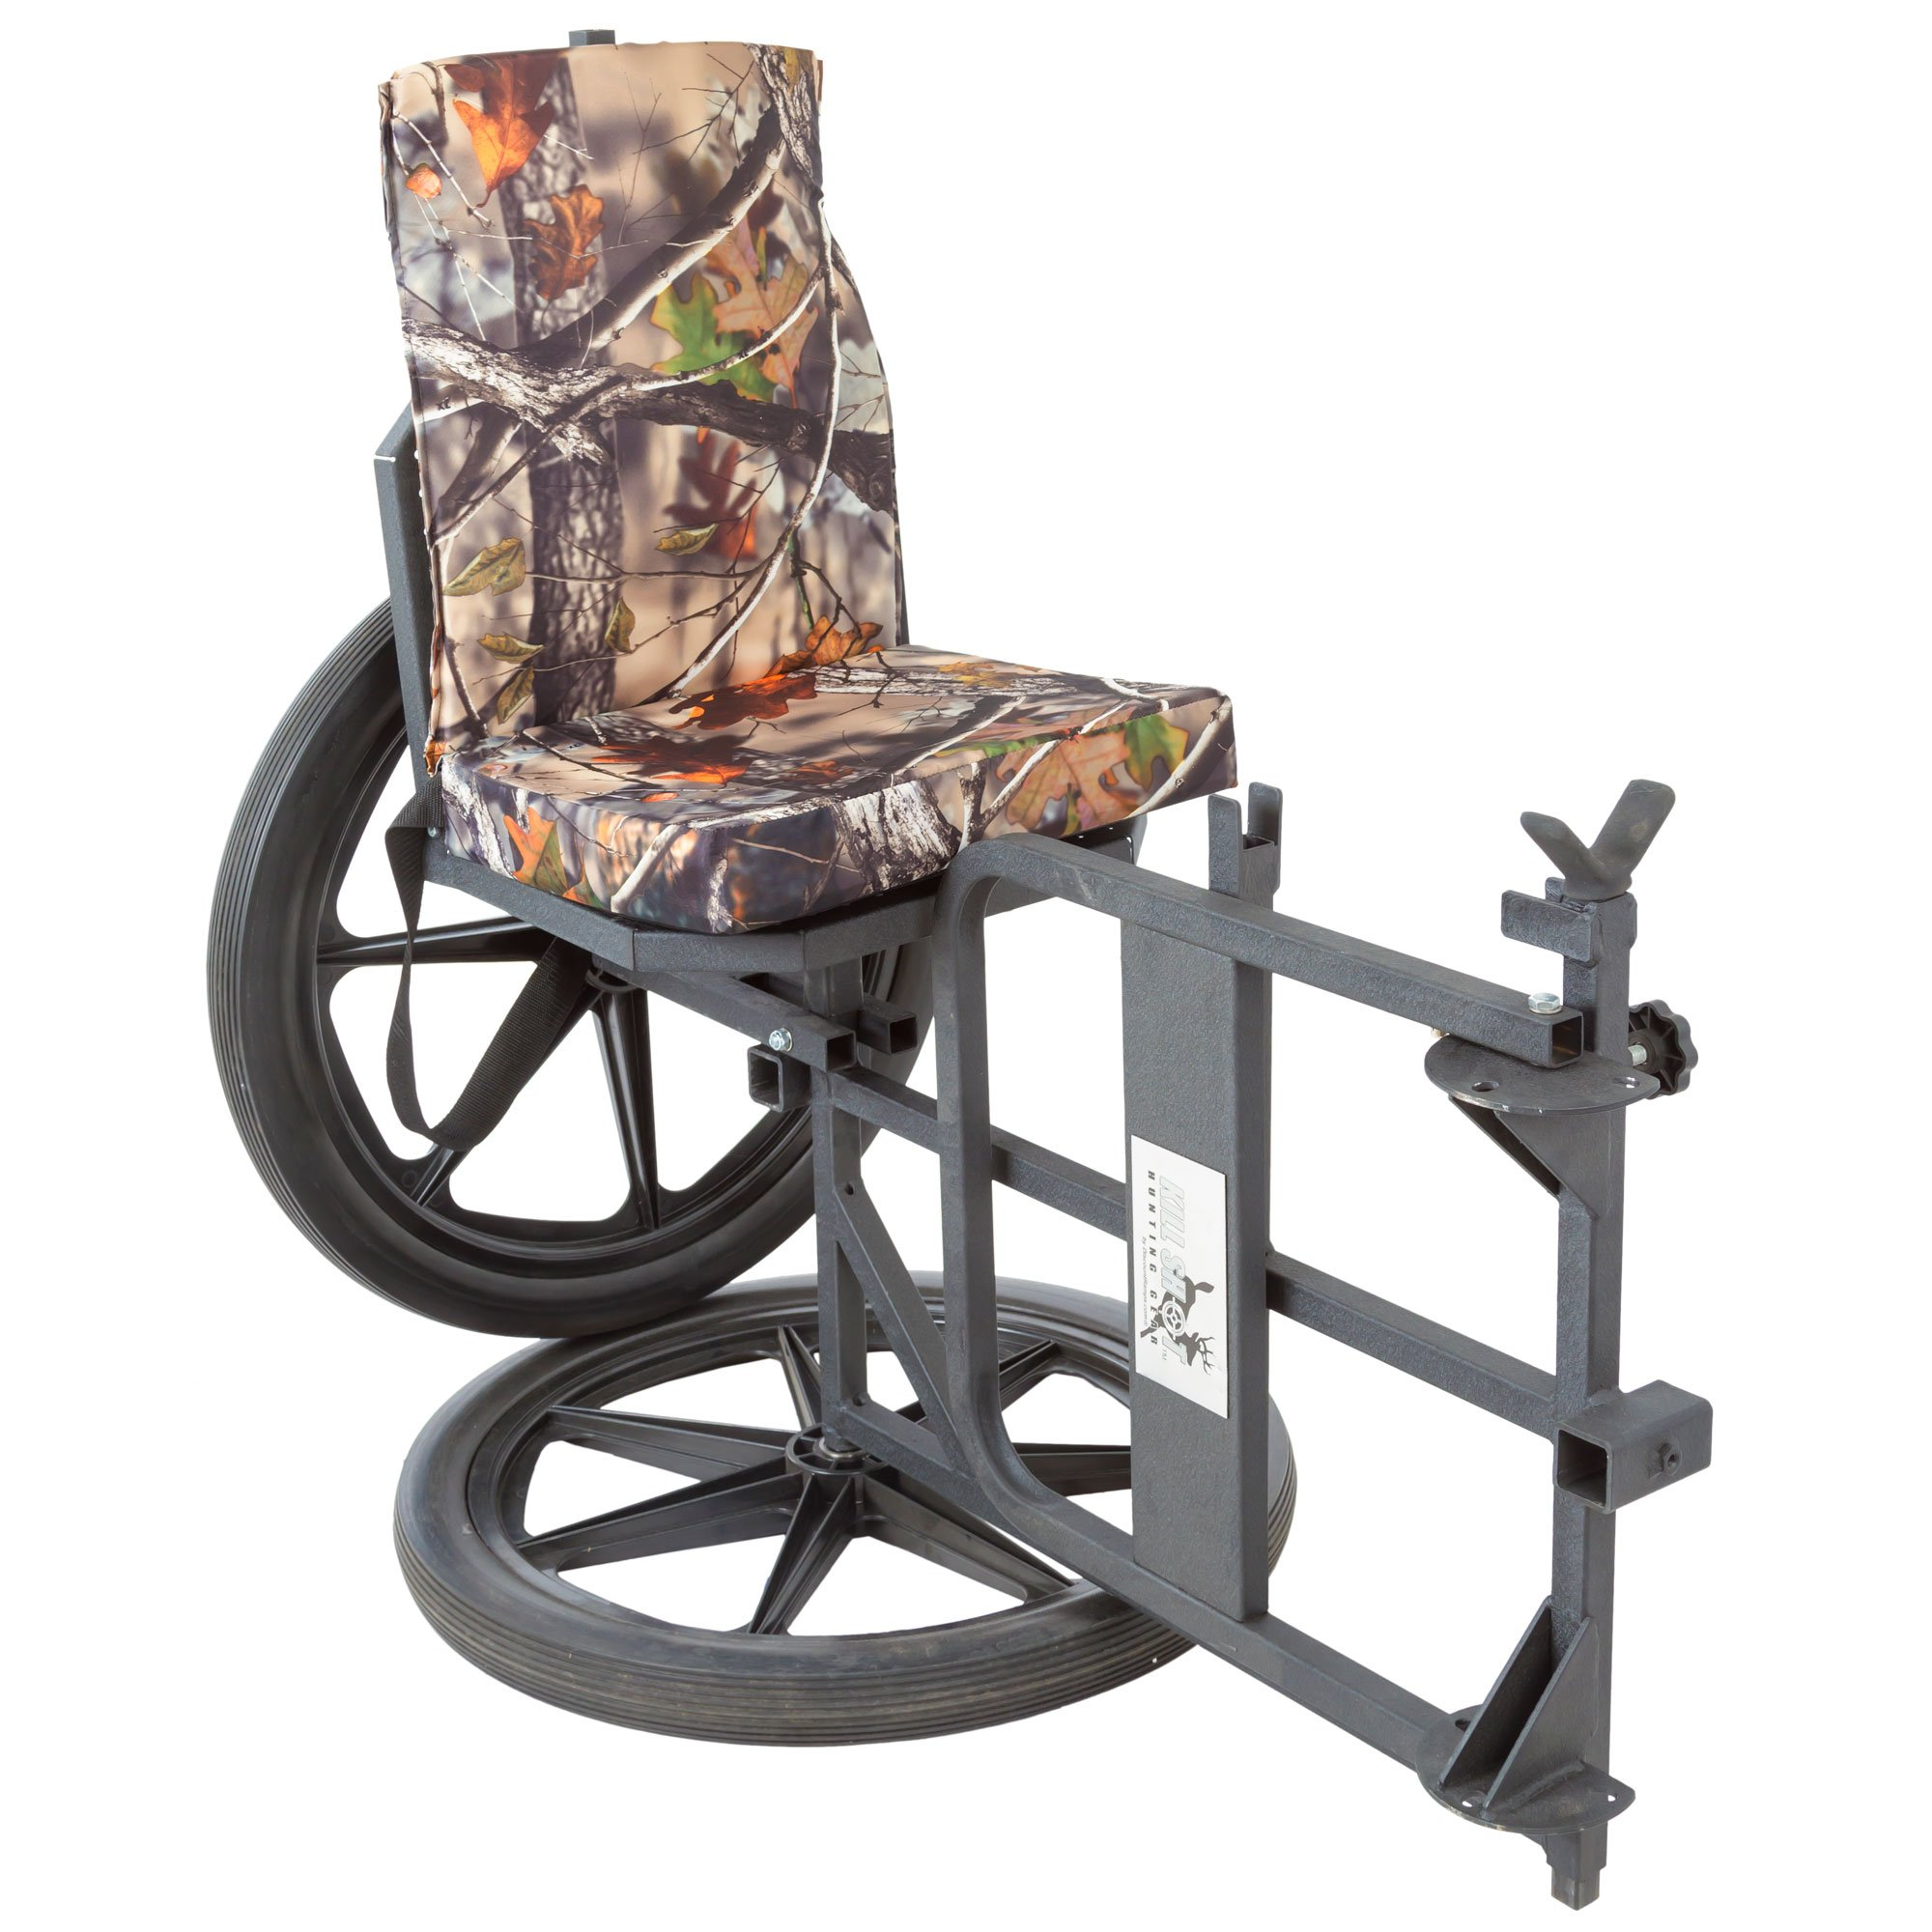 Kill Shot Throne Multipurpose Game Cart & Hunting Chair with Cushion by Kill Shot